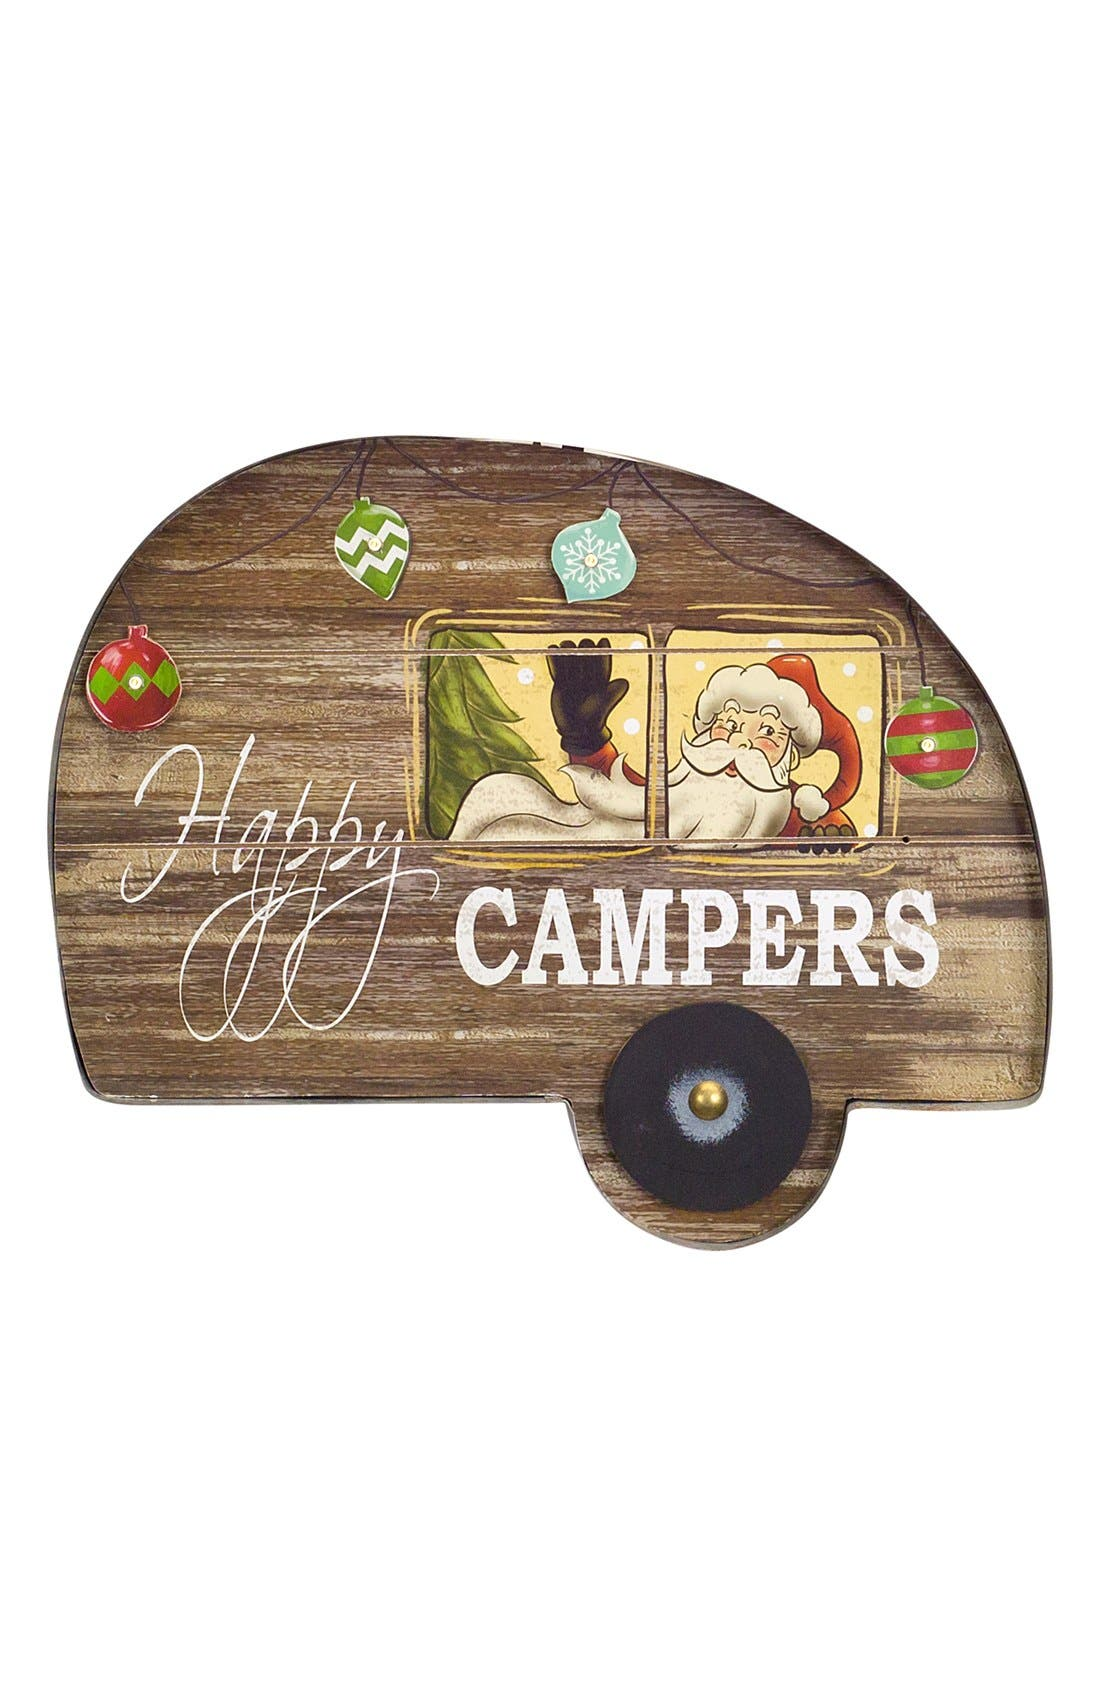 'Happy Campers' LED Wall Plaque,                             Main thumbnail 1, color,                             200